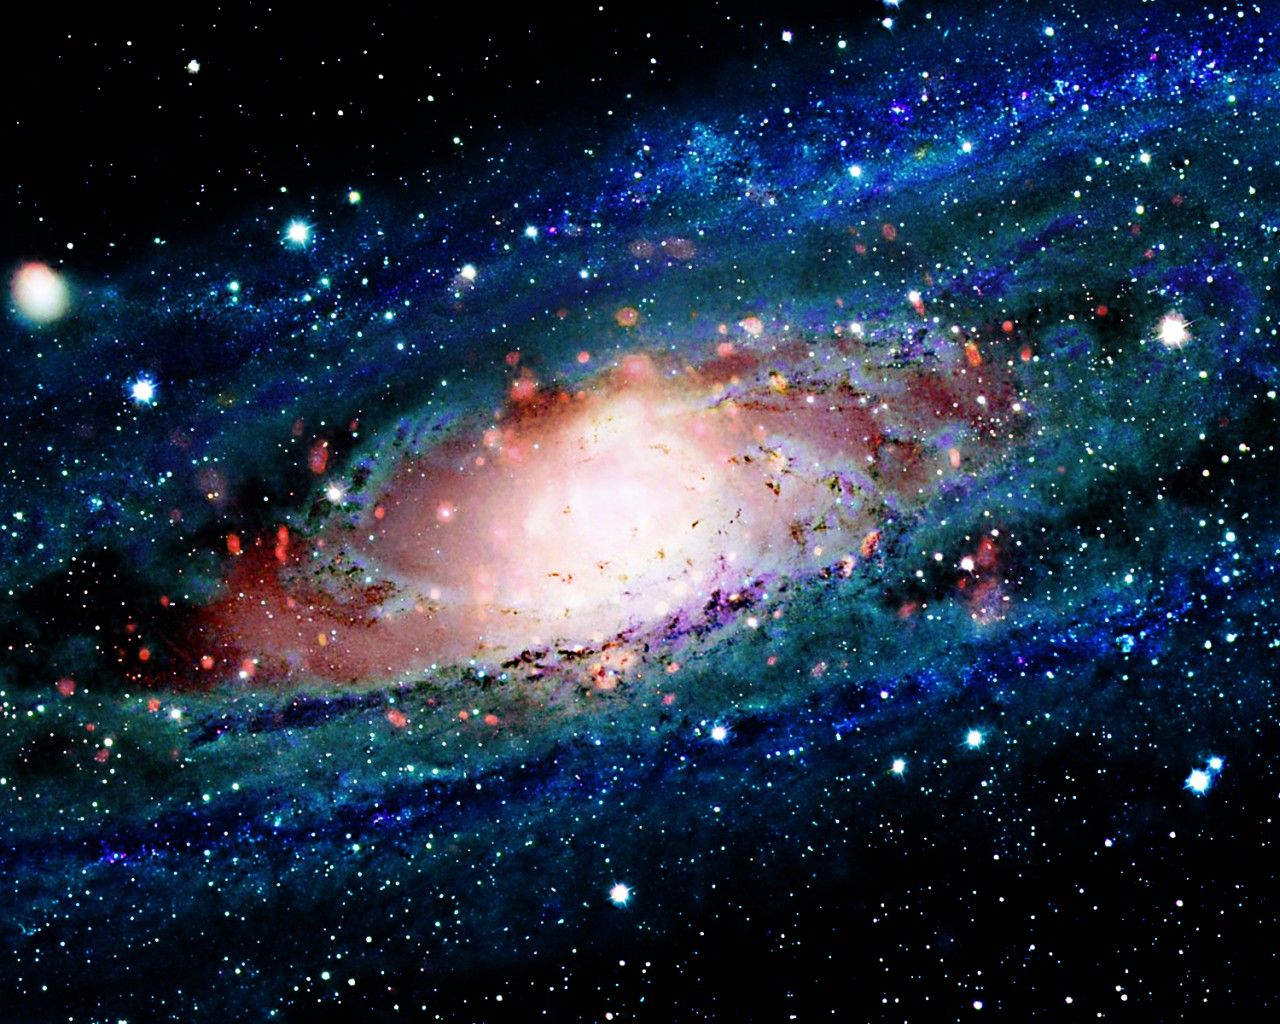 Galaxy Space Live Wallpapers Hd By Narendra Doriya: Outer Space Galaxy Wallpaper For Desktop Background 13 HD